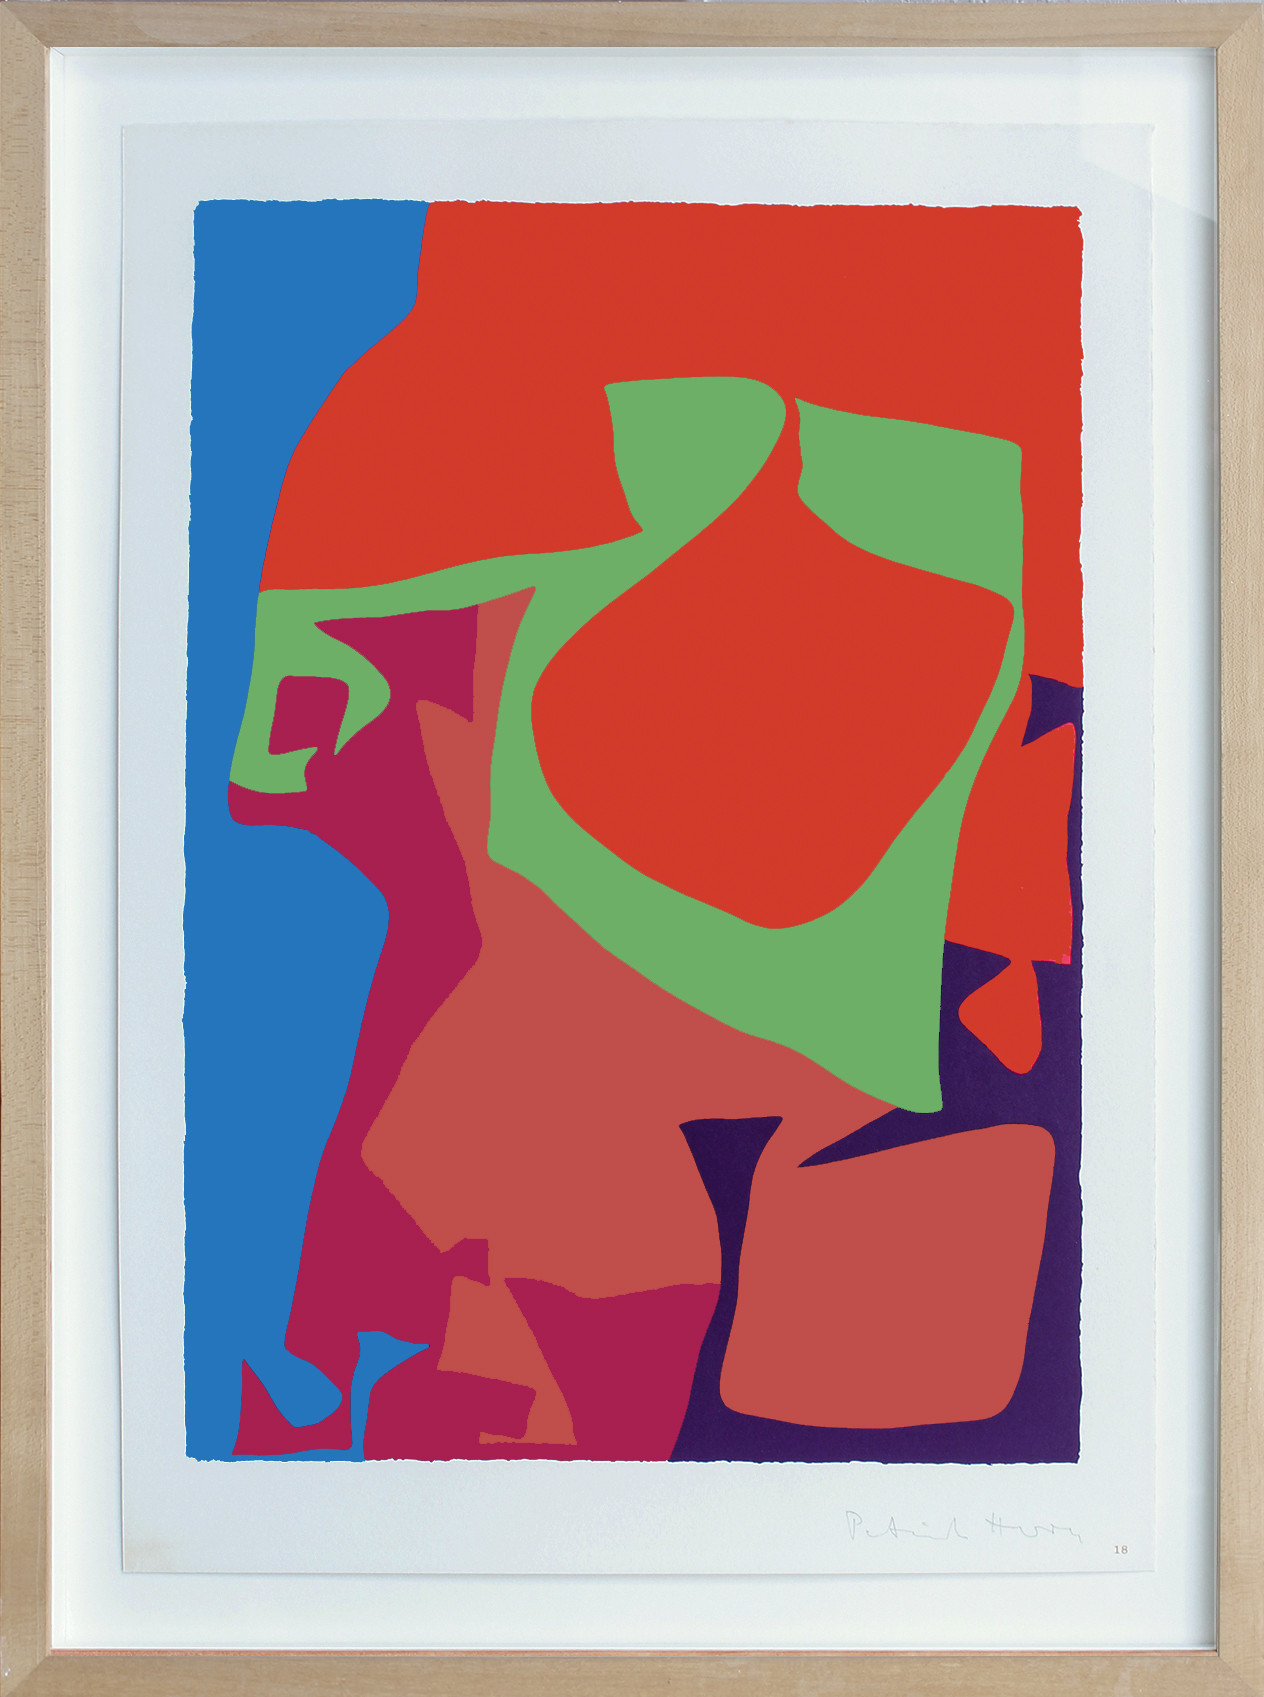 <span class=&#34;link fancybox-details-link&#34;><a href=&#34;/artists/93-patrick-heron-cbe/works/5660-patrick-heron-cbe-first-vertical-screenprint-18-from-shapes-of-1978/&#34;>View Detail Page</a></span><div class=&#34;artist&#34;><strong>Patrick Heron CBE</strong></div> 1920 – 1999 <div class=&#34;title&#34;><em>First Vertical Screenprint : 18 from 'Shapes of Colour' suite</em>, 1978</div> <div class=&#34;signed_and_dated&#34;>signed 'Patrick Heron' in pencil, lower right</div> <div class=&#34;medium&#34;>silkscreen printed in colours on Velin Arches paper</div> <div class=&#34;dimensions&#34;>image size: 43 x 30 cm<br /> 16 7/8 x 11 3/4 in<br /> sheet size: 50 x 35.2 cm<br /> 19 3/4 x 13 7/8 in</div> <div class=&#34;edition_details&#34;>from the edition of 50 signed copies of each of the 20 prints, numbered 1 to 50, aside from 10 Artist's Proofs</div><div class=&#34;copyright_line&#34;>© The Estate of Patrick Heron</div>